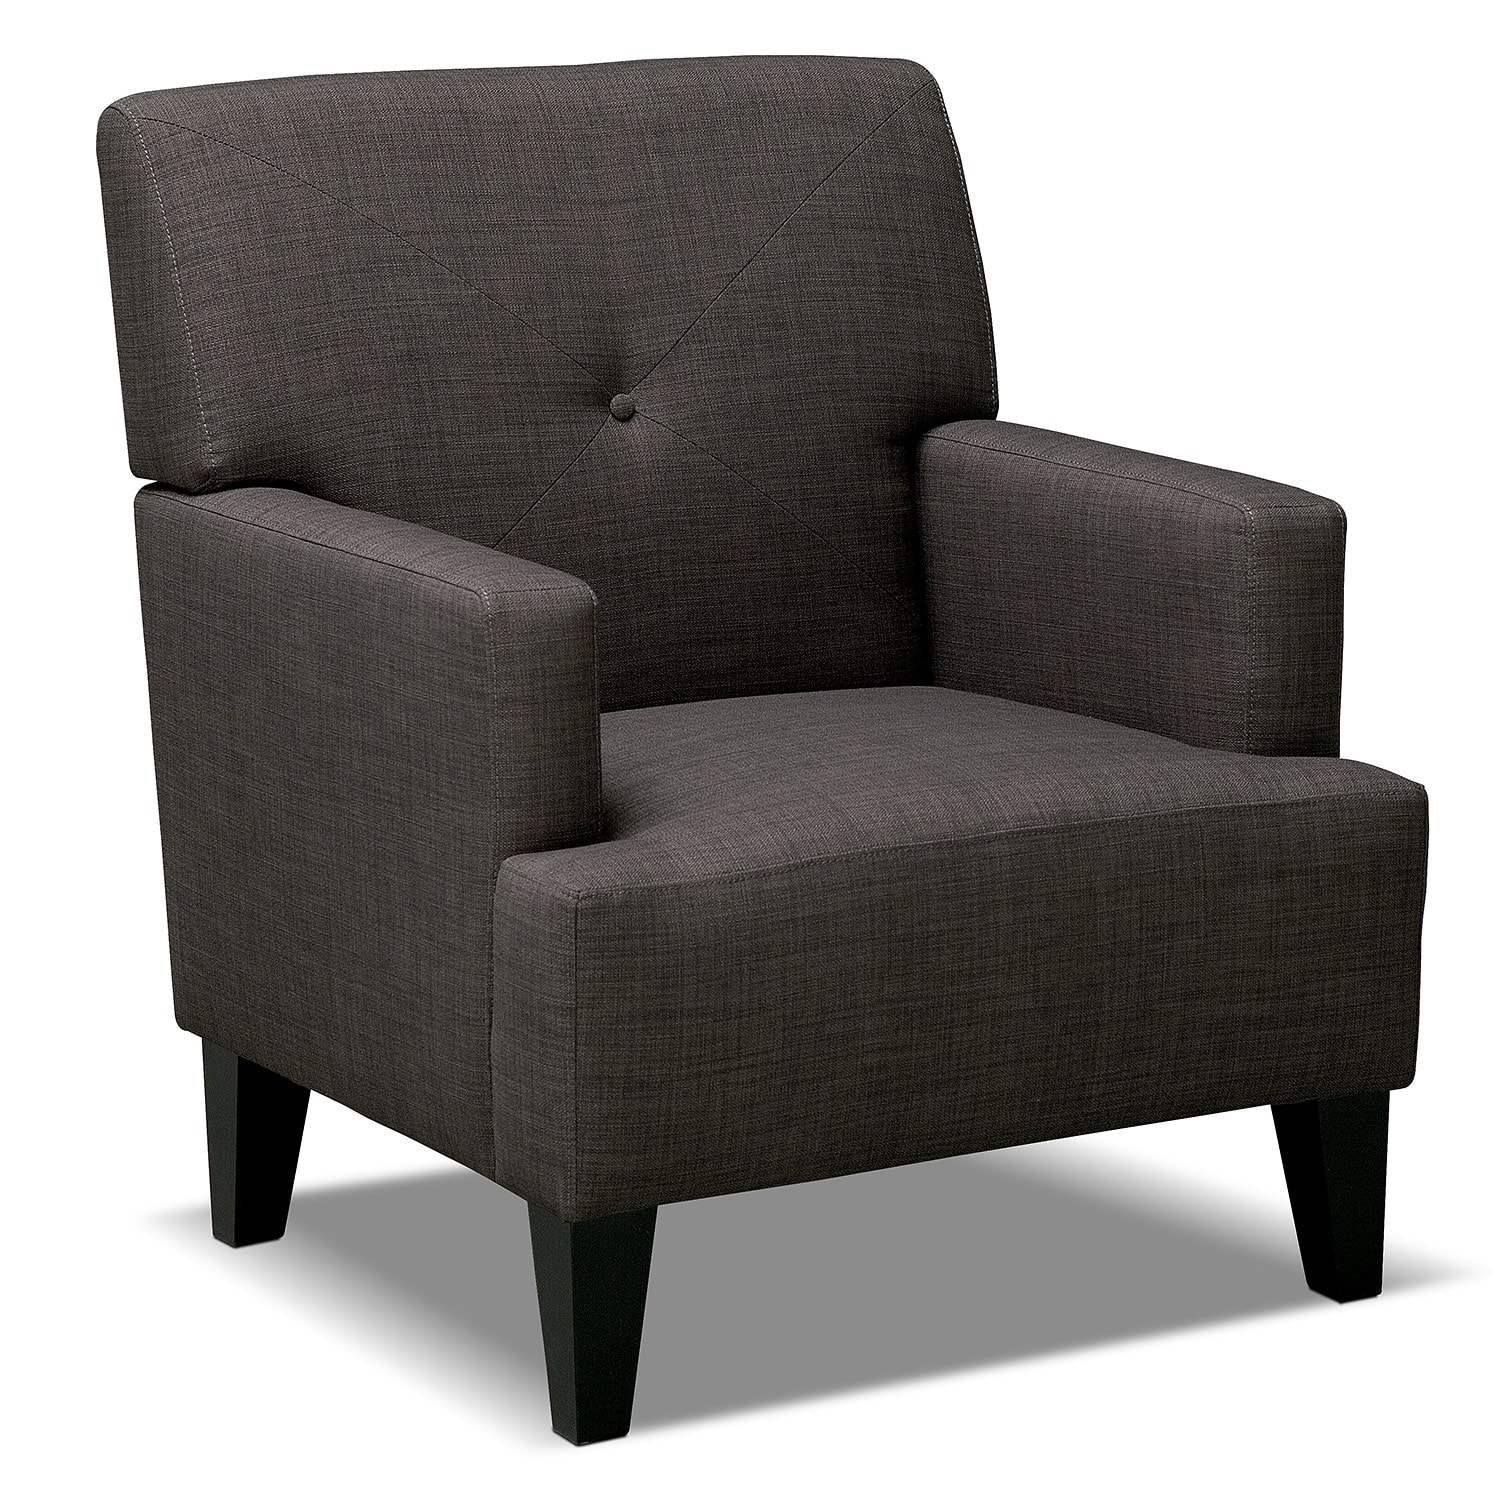 Avalon accent chair charcoal value city furniture for Occasional furniture